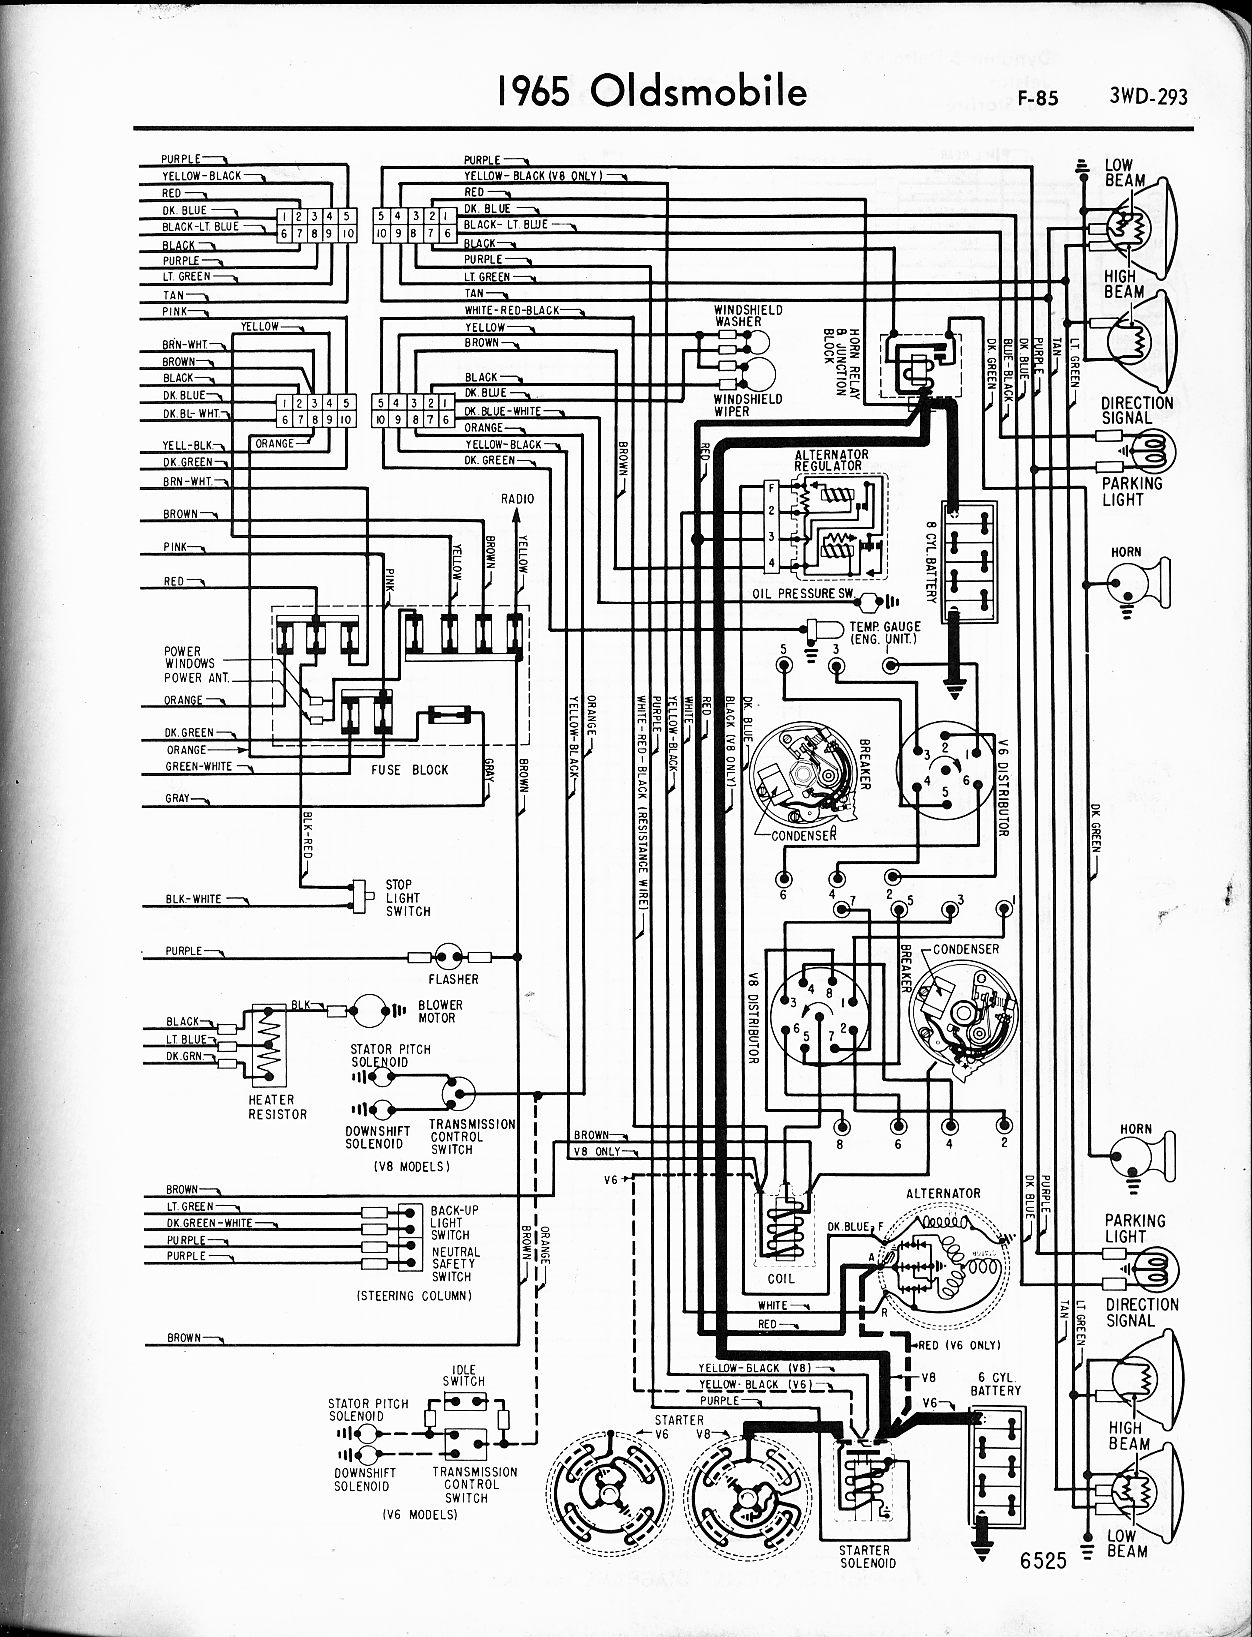 1986 Buick Lesabre Wiring Diagram Opinions About 2000 Porsche Boxster Engine Service Manual Motor Pdf Firing Order Eldonianews Com